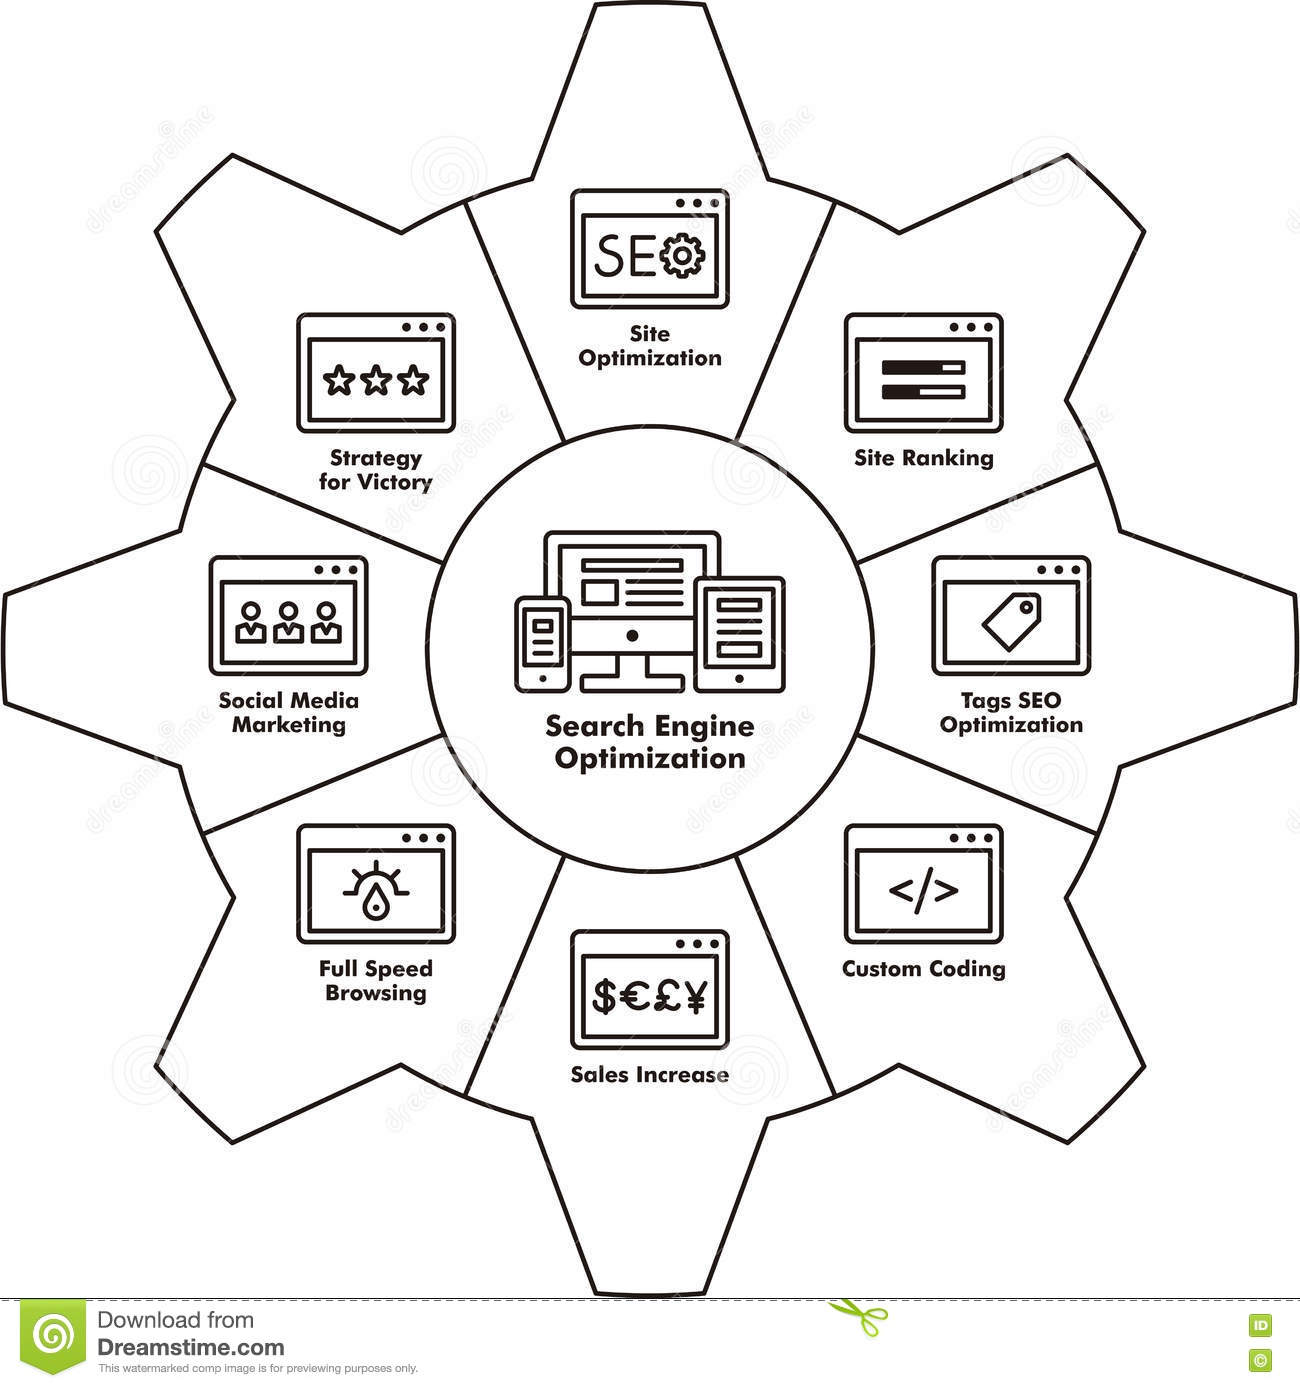 Seo Components Icon Stock Image Of Technological 77193401 Victory Engine Diagram Download